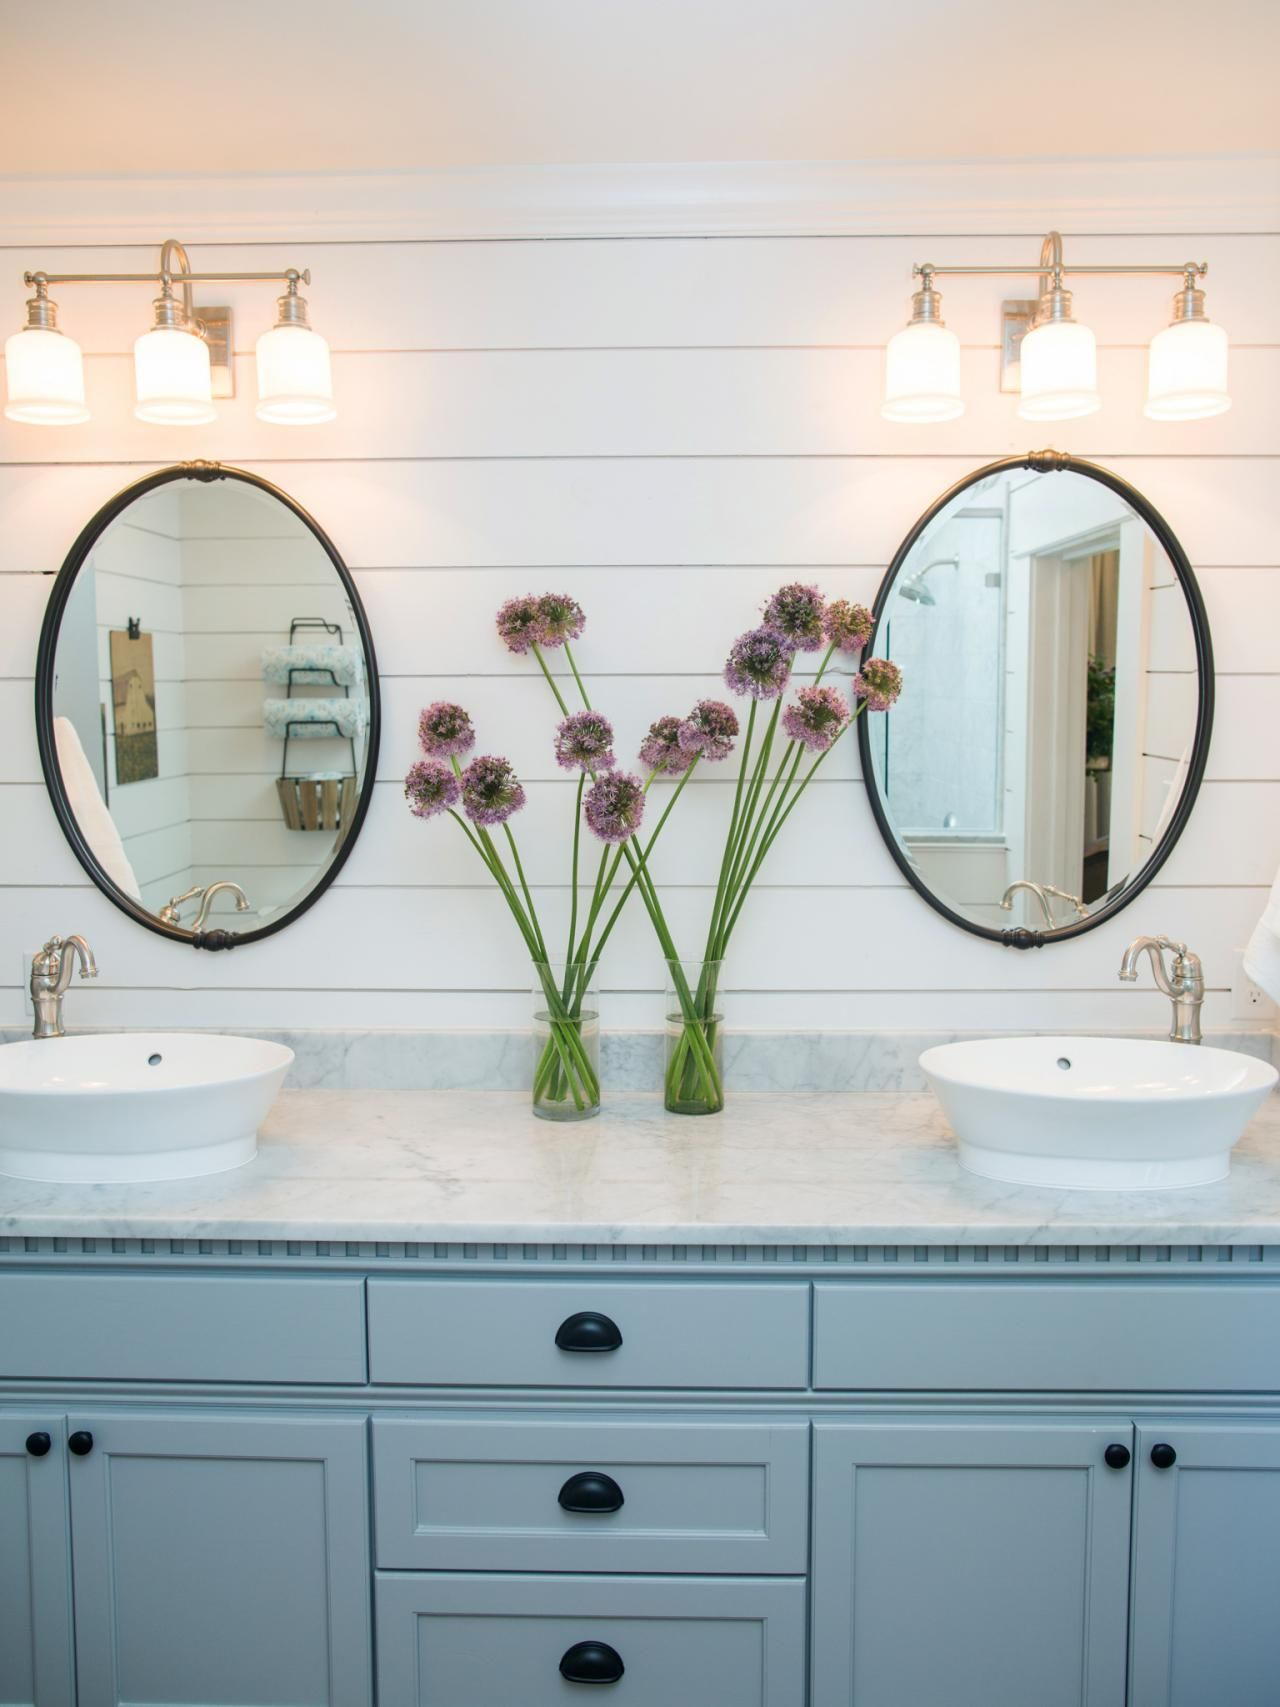 Genial 5 Things Every Fixer Upper Inspired Farmhouse Bathroom Needs | Decorating  And Design Blog | HGTV